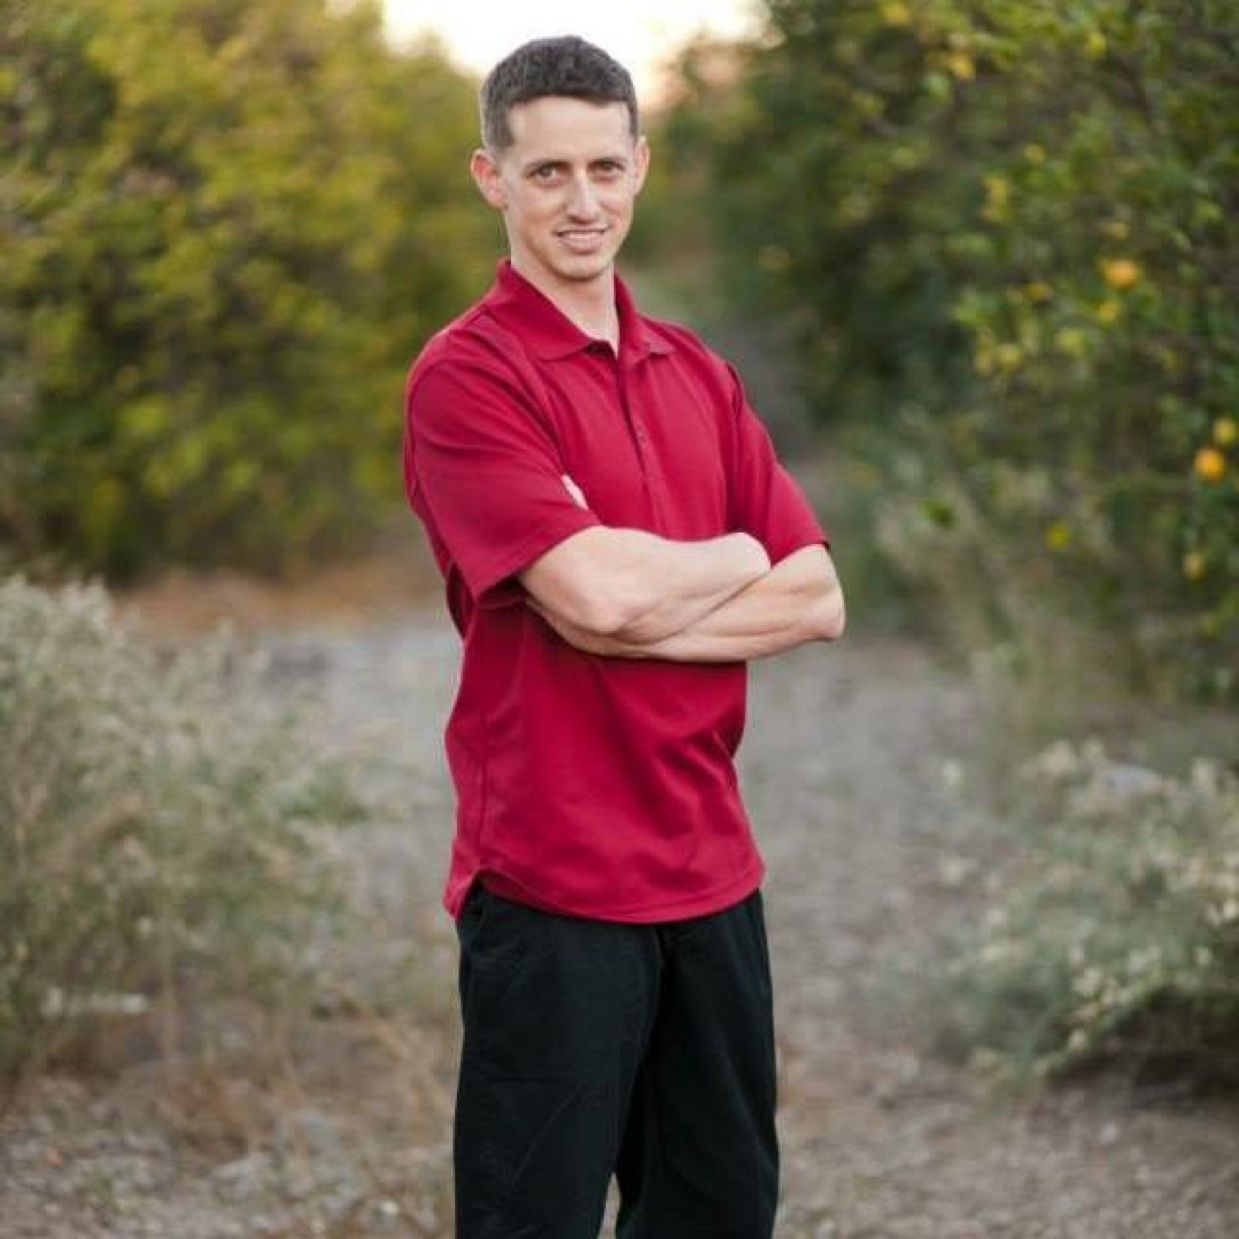 lake elsinore singles If you never tried dating lake elsinore men in the internet, you should make an attempt who knows, the right man could be waiting for you right now on luvfreecom.